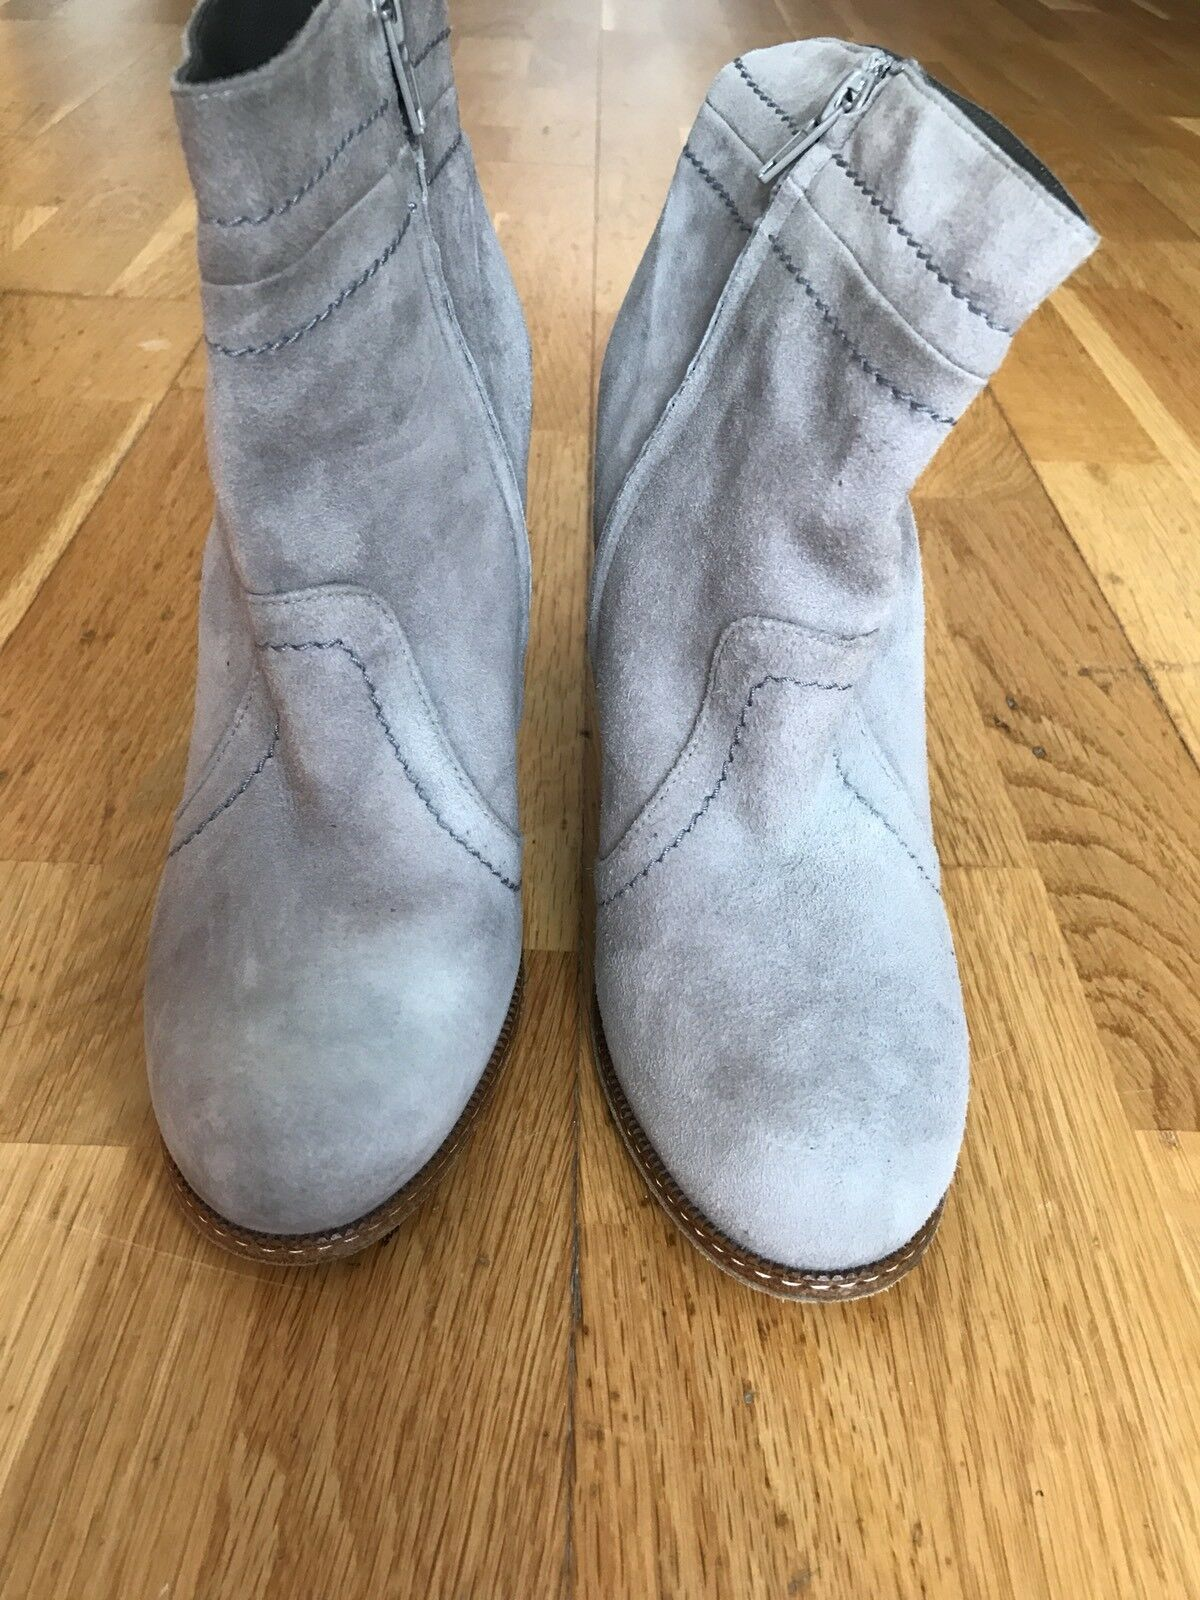 Hoss Intropia Suede High Heeled Ankle Boots, Sand, Size 38